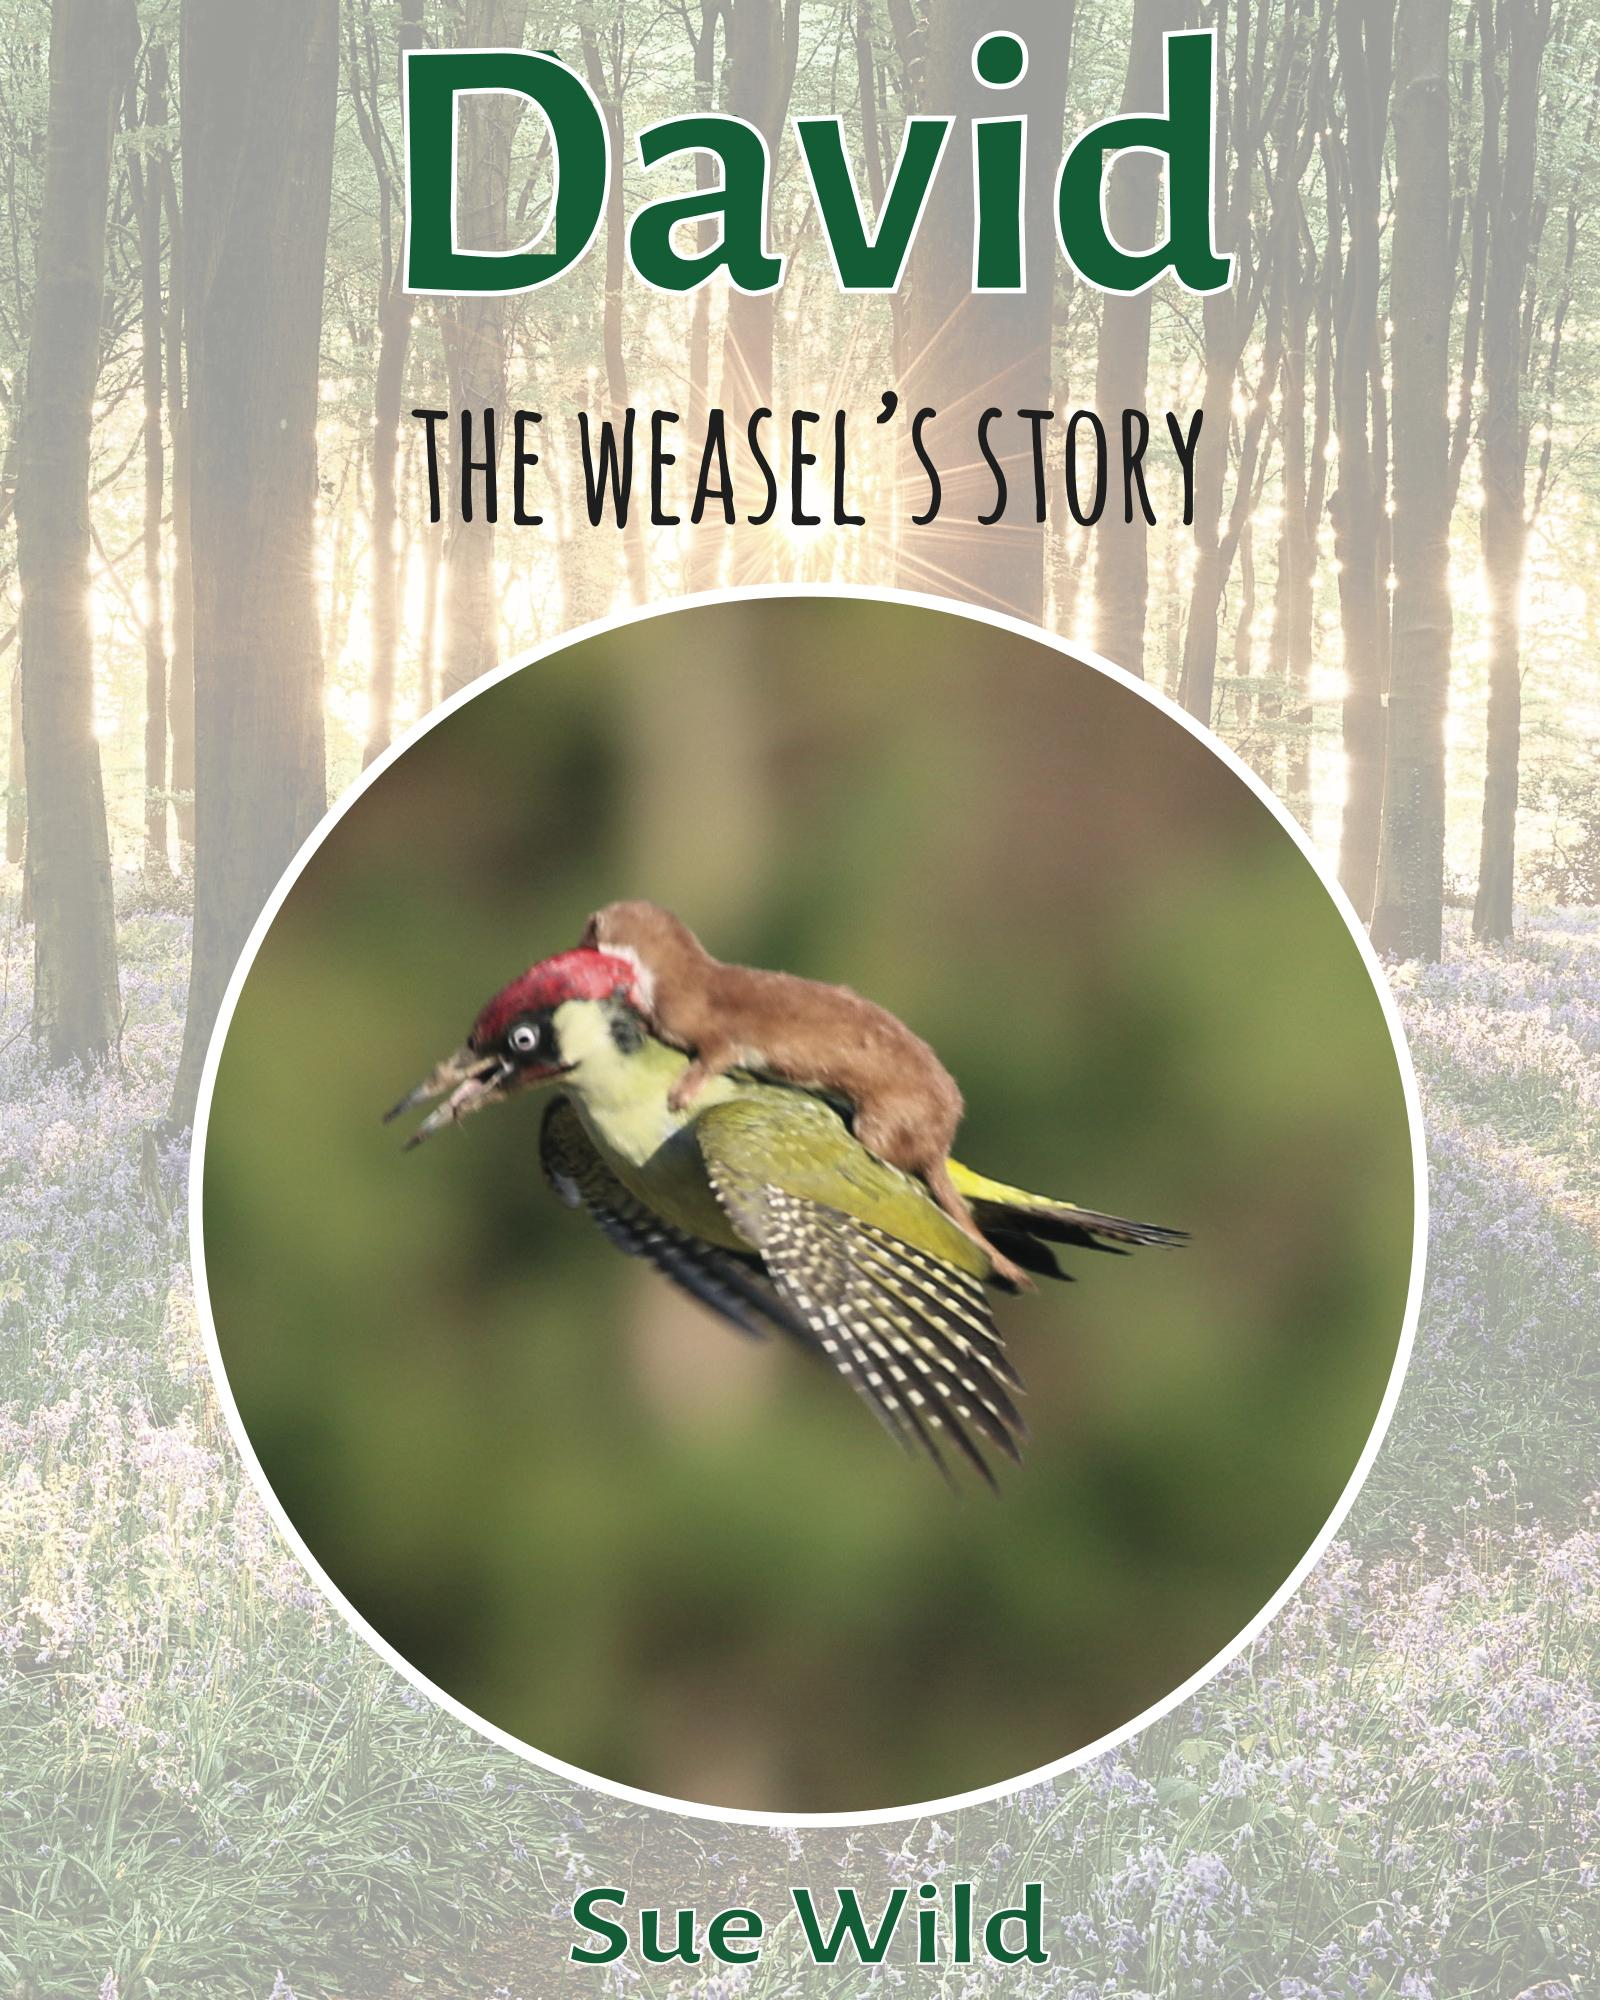 David the weasels story image by Martin Le May weaselpecker